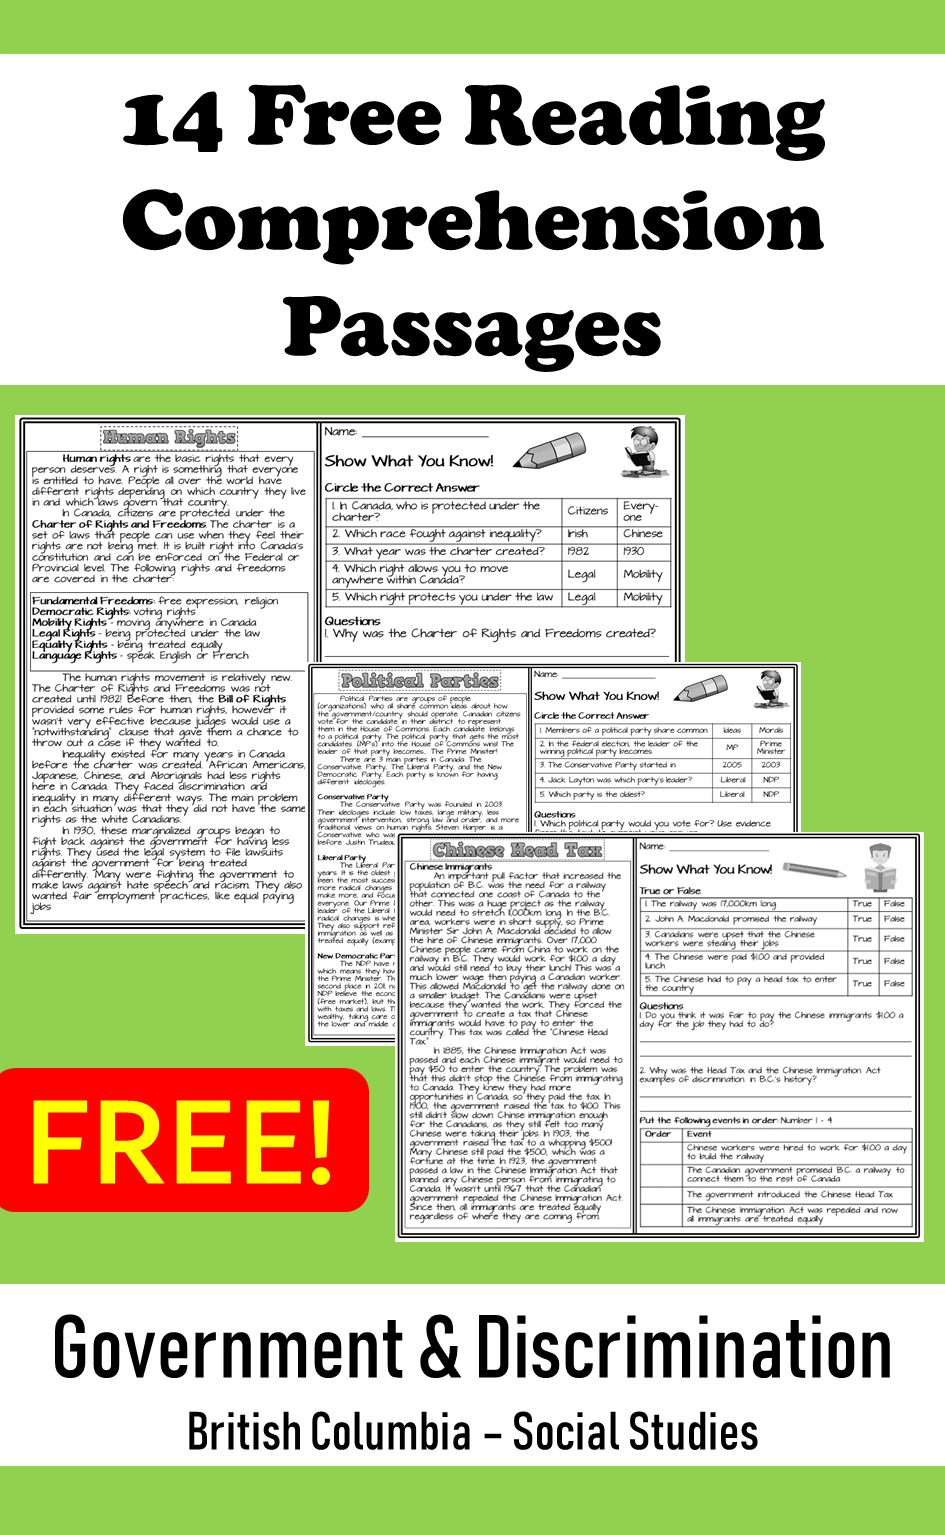 medium resolution of 14 Free Reading Comprehension Passages for British Columbia Social Studies    Reading comprehension passages